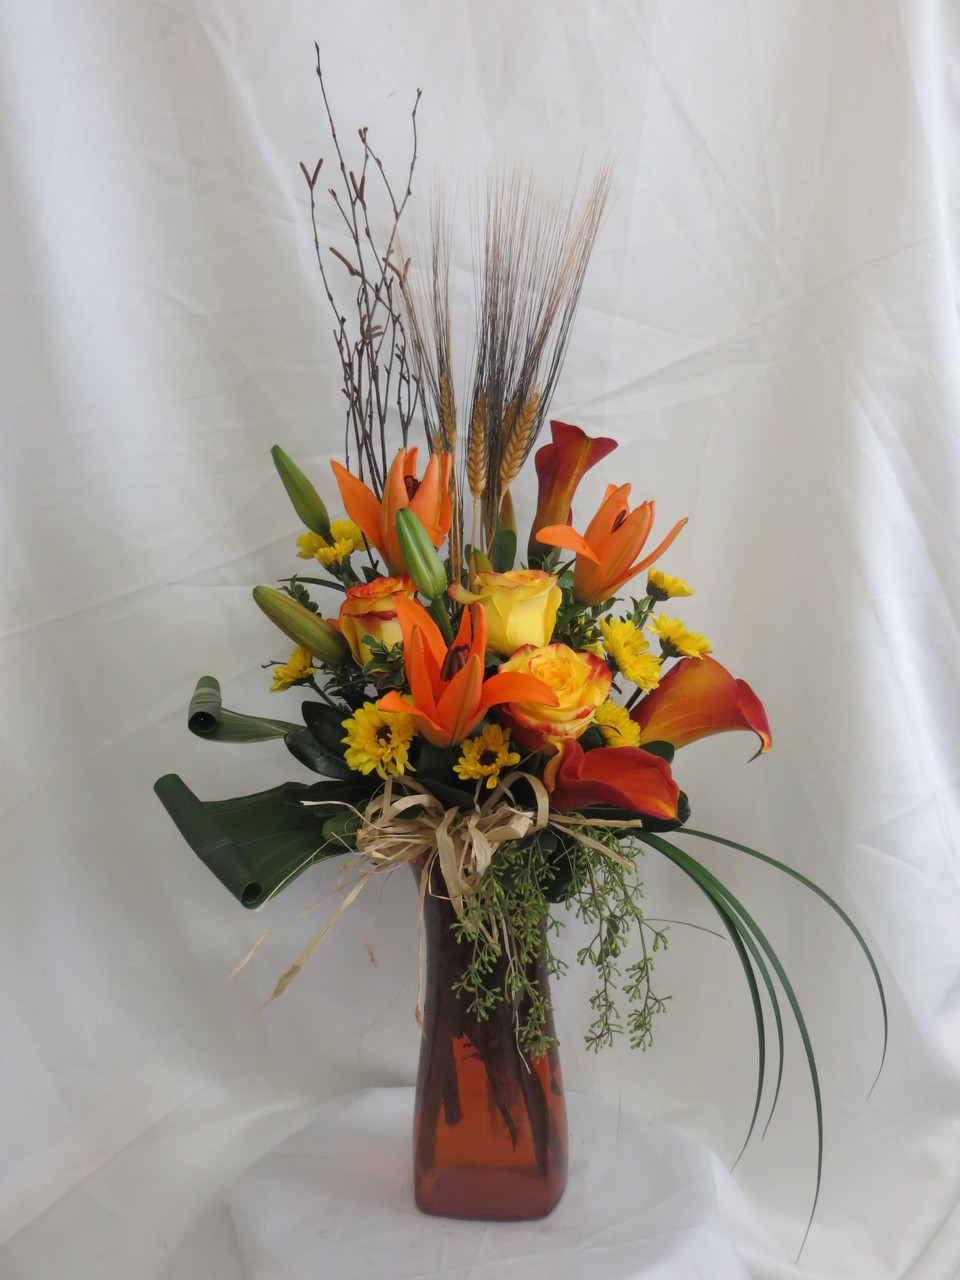 Fall Flowers Send The Autumn Excellence Bouquet And Brighten A Day